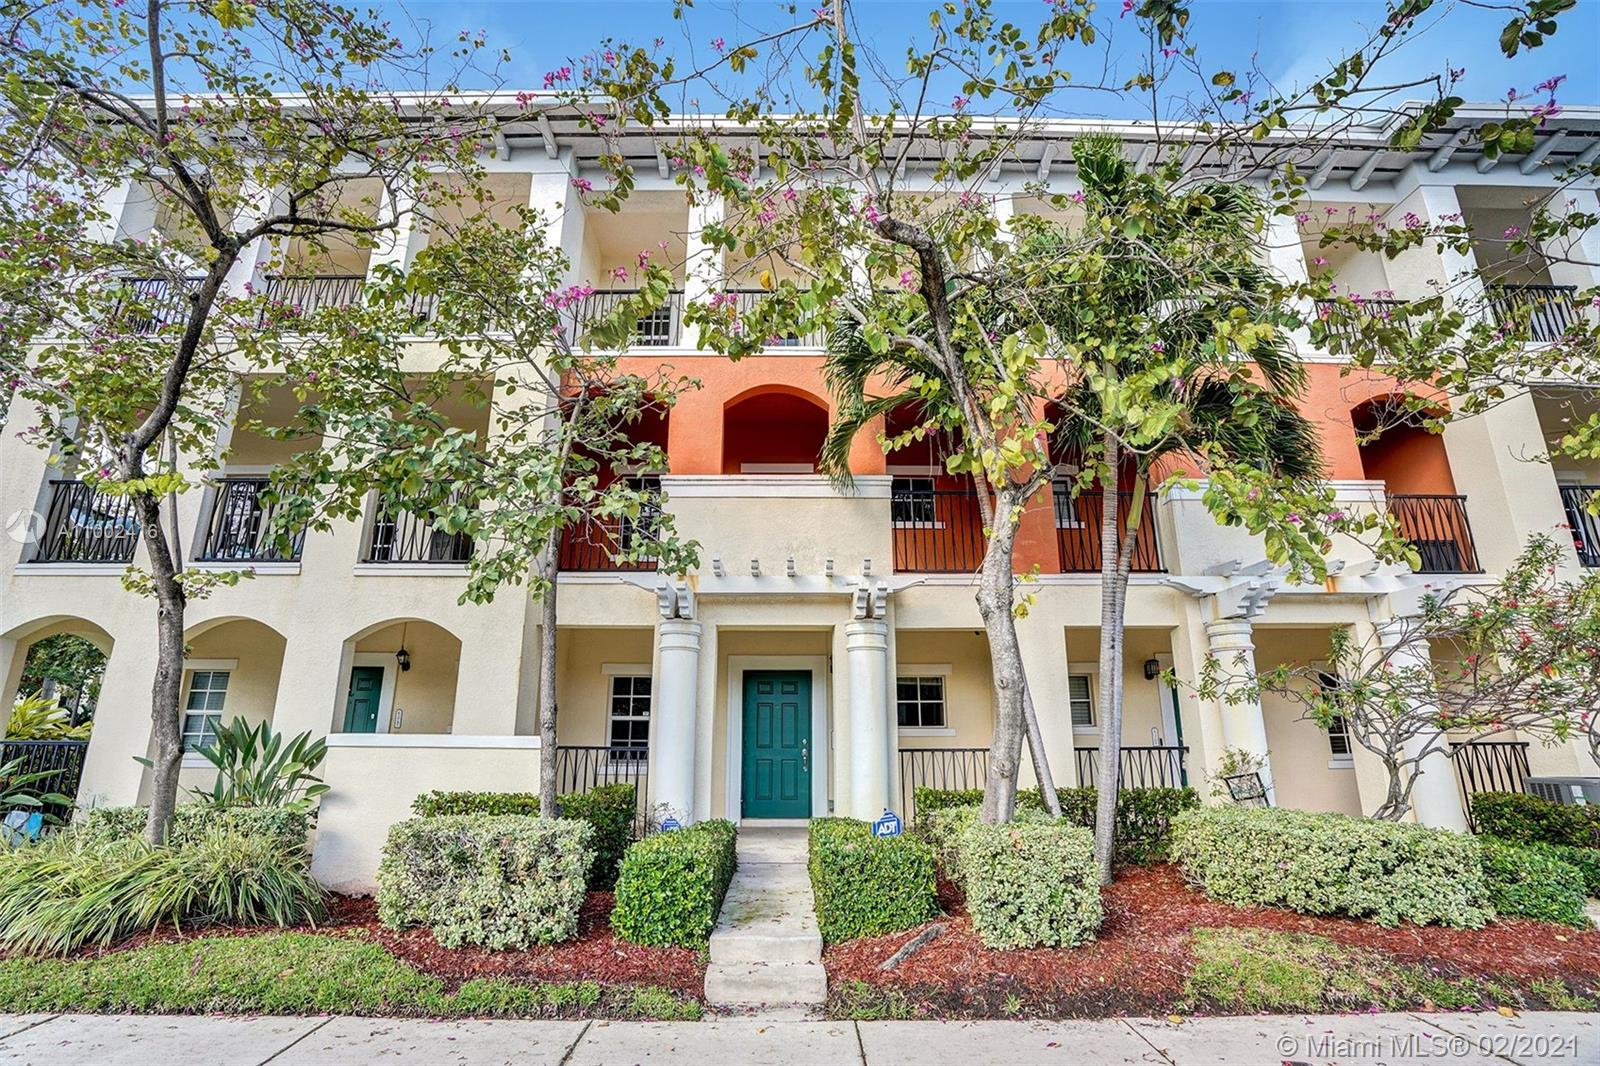 Nicely maintained three story townhome in Pompano Beach.  This 3 bedroom, 2 full bath and 2 half bath townhome and 2 car garage is located less than 3 miles to the beach.  1st floor has a bonus room, which can be used for home office or play room with half bath.  2nd floor has your living quarters, large dinning room, kitchen and living room.  So many different ways to design this floor.  3rd floor has all 3 bedrooms and washer and dryer.  Newly painted a soft gray color.  Community grounds offers walking paths along the lake as well as a community pool and exercise room.